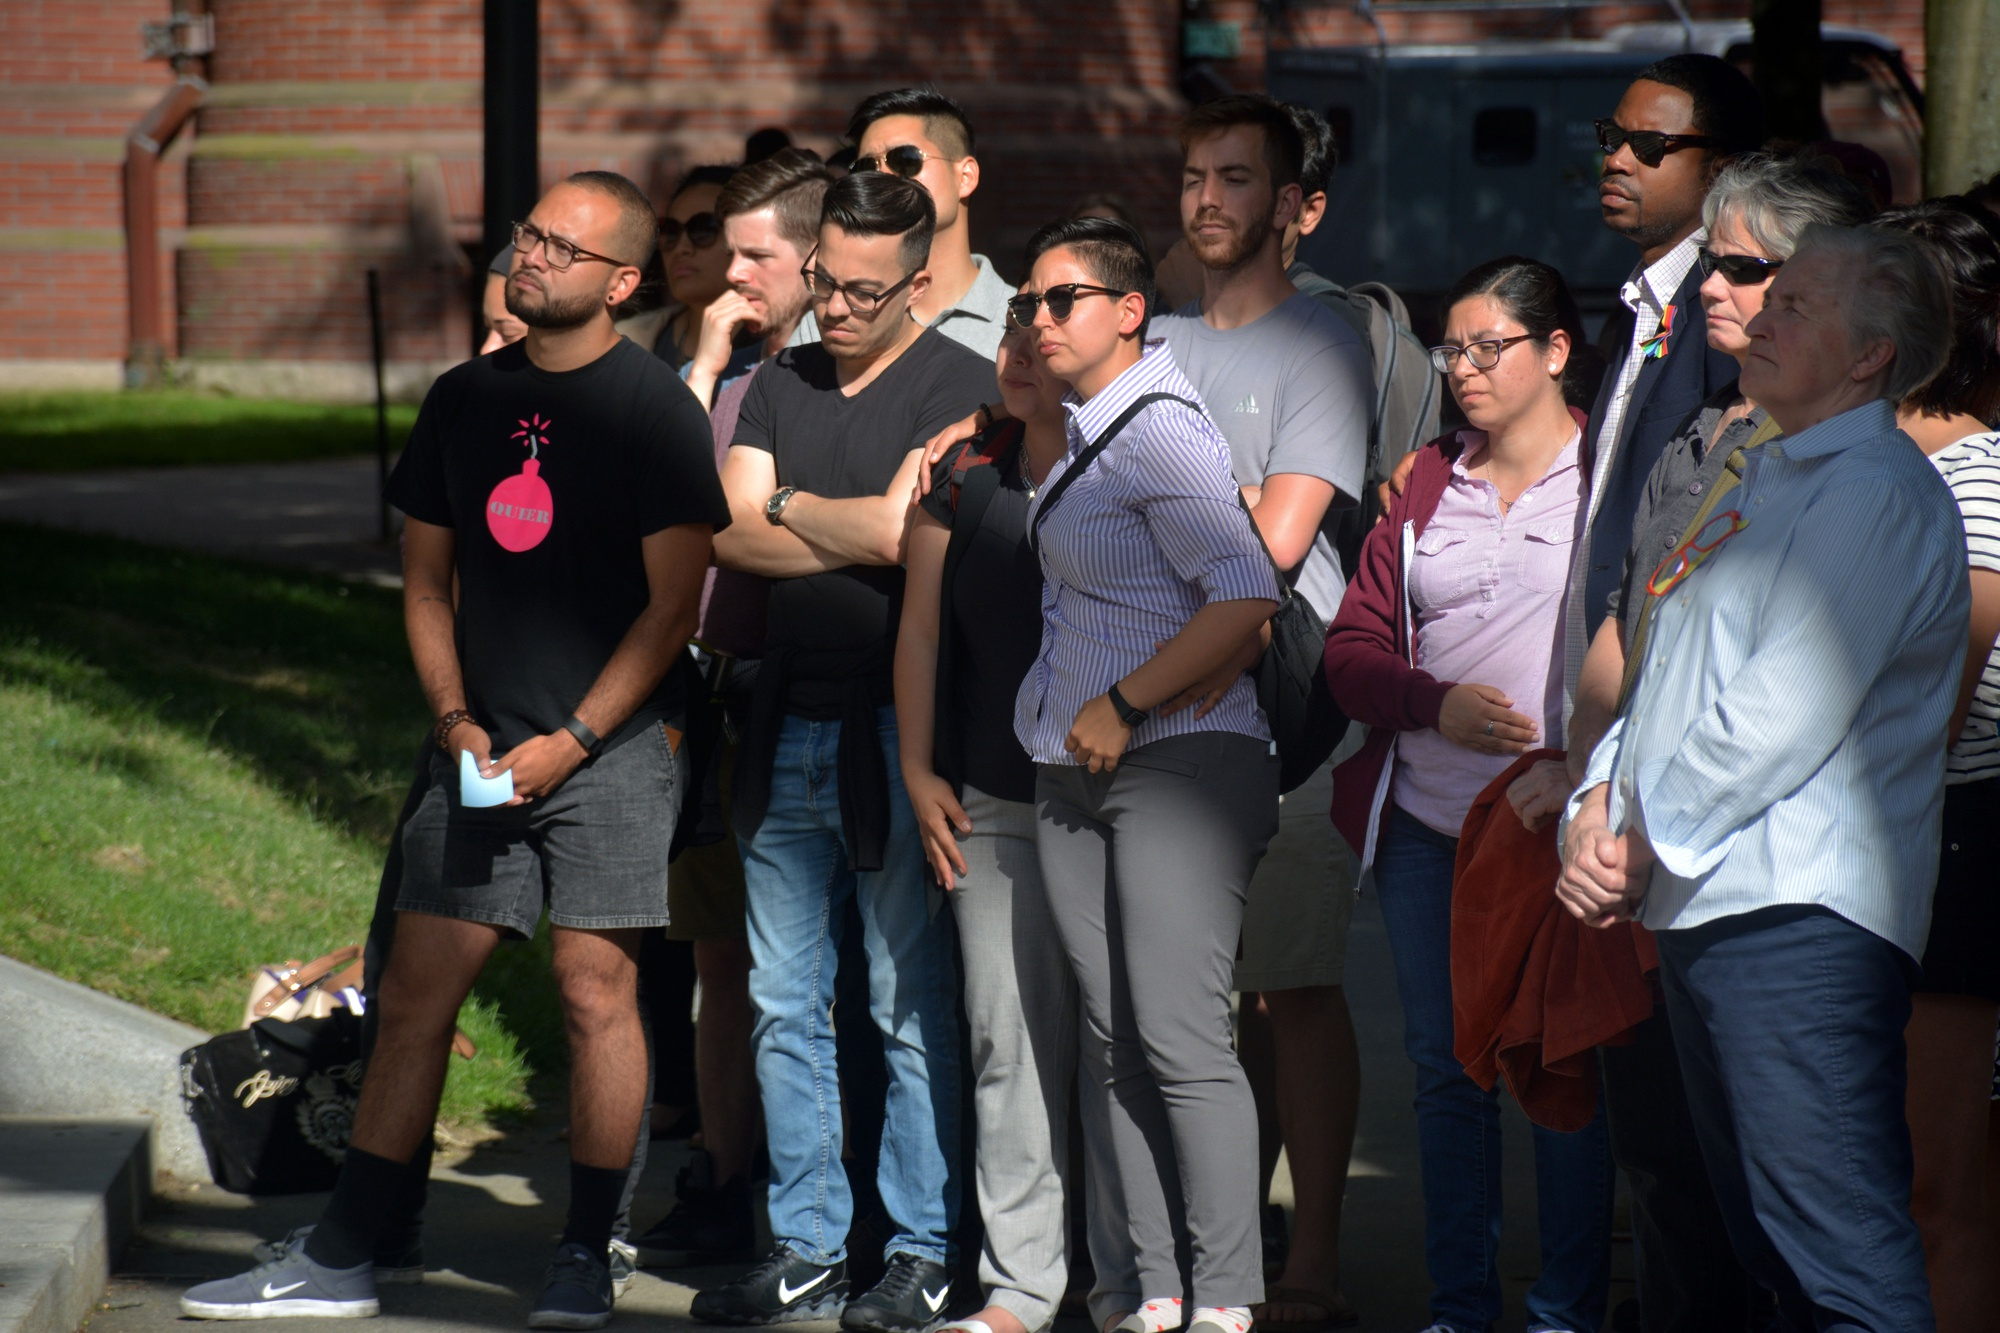 More than 200 Harvard affiliates gathered at the steps of Memorial Church on Tuesday to remember the victims of the Pulse Nightclub shooting in Orlando.